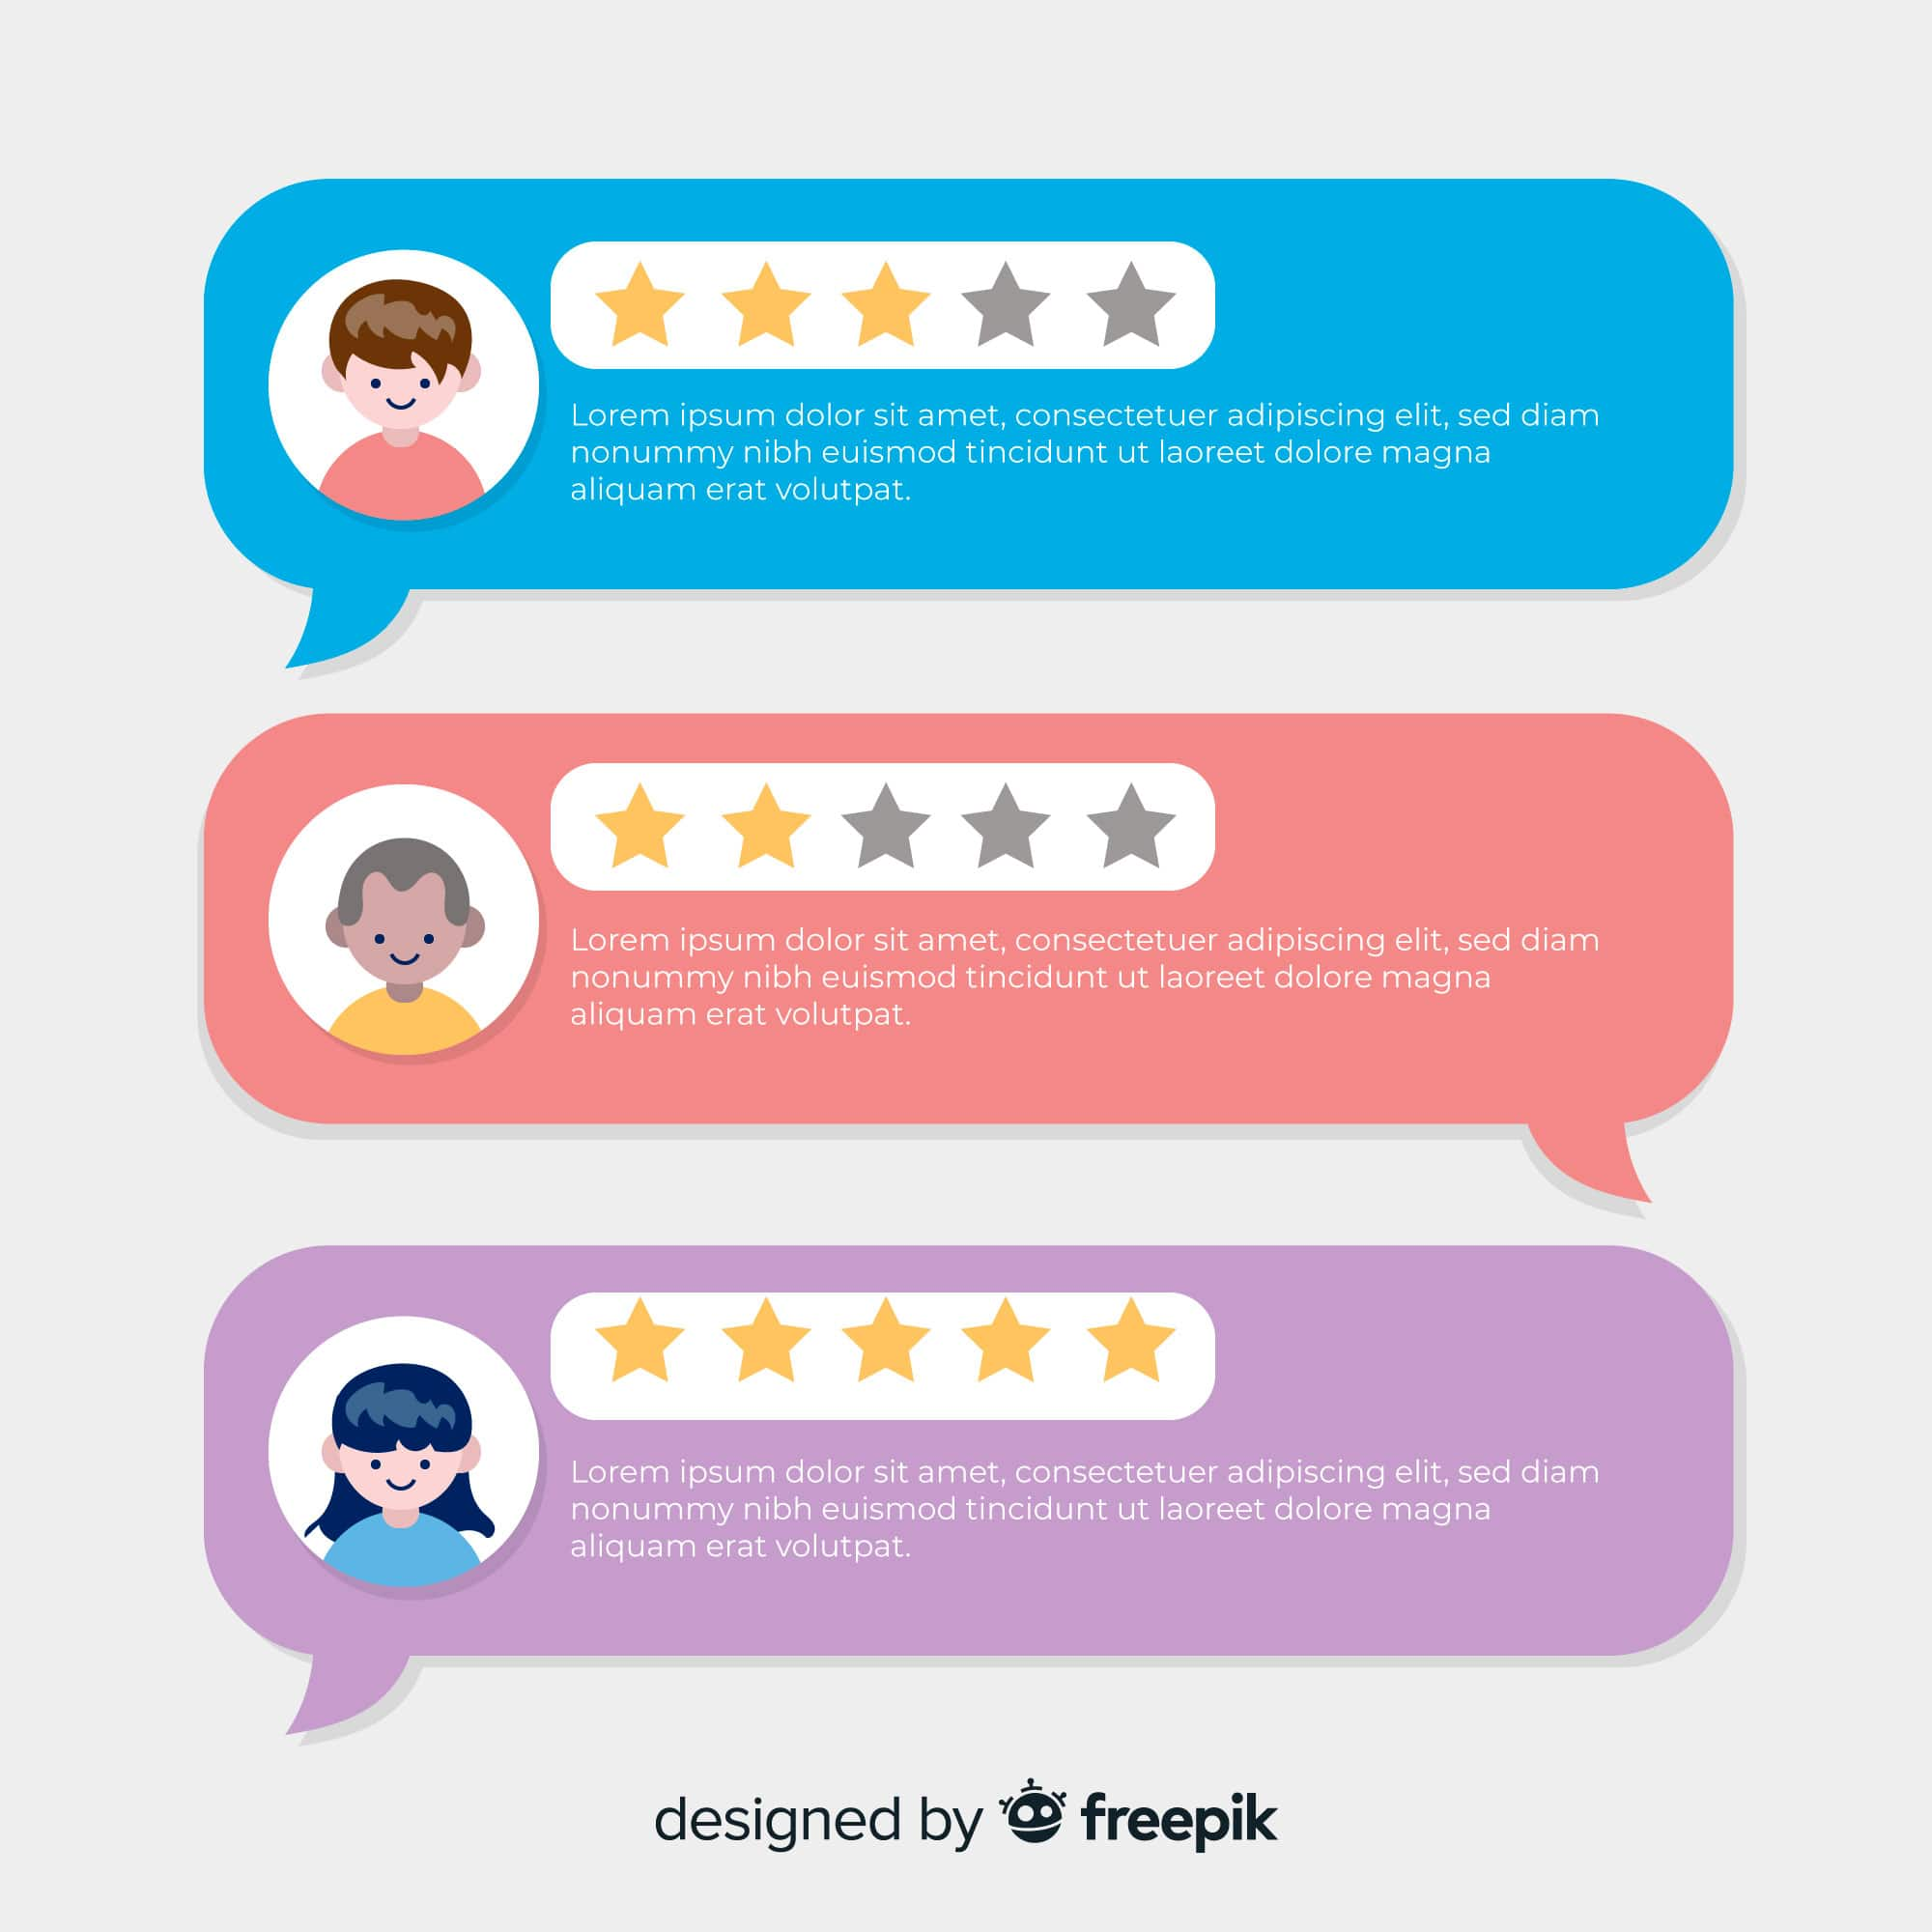 Sample website reviews from 3 users